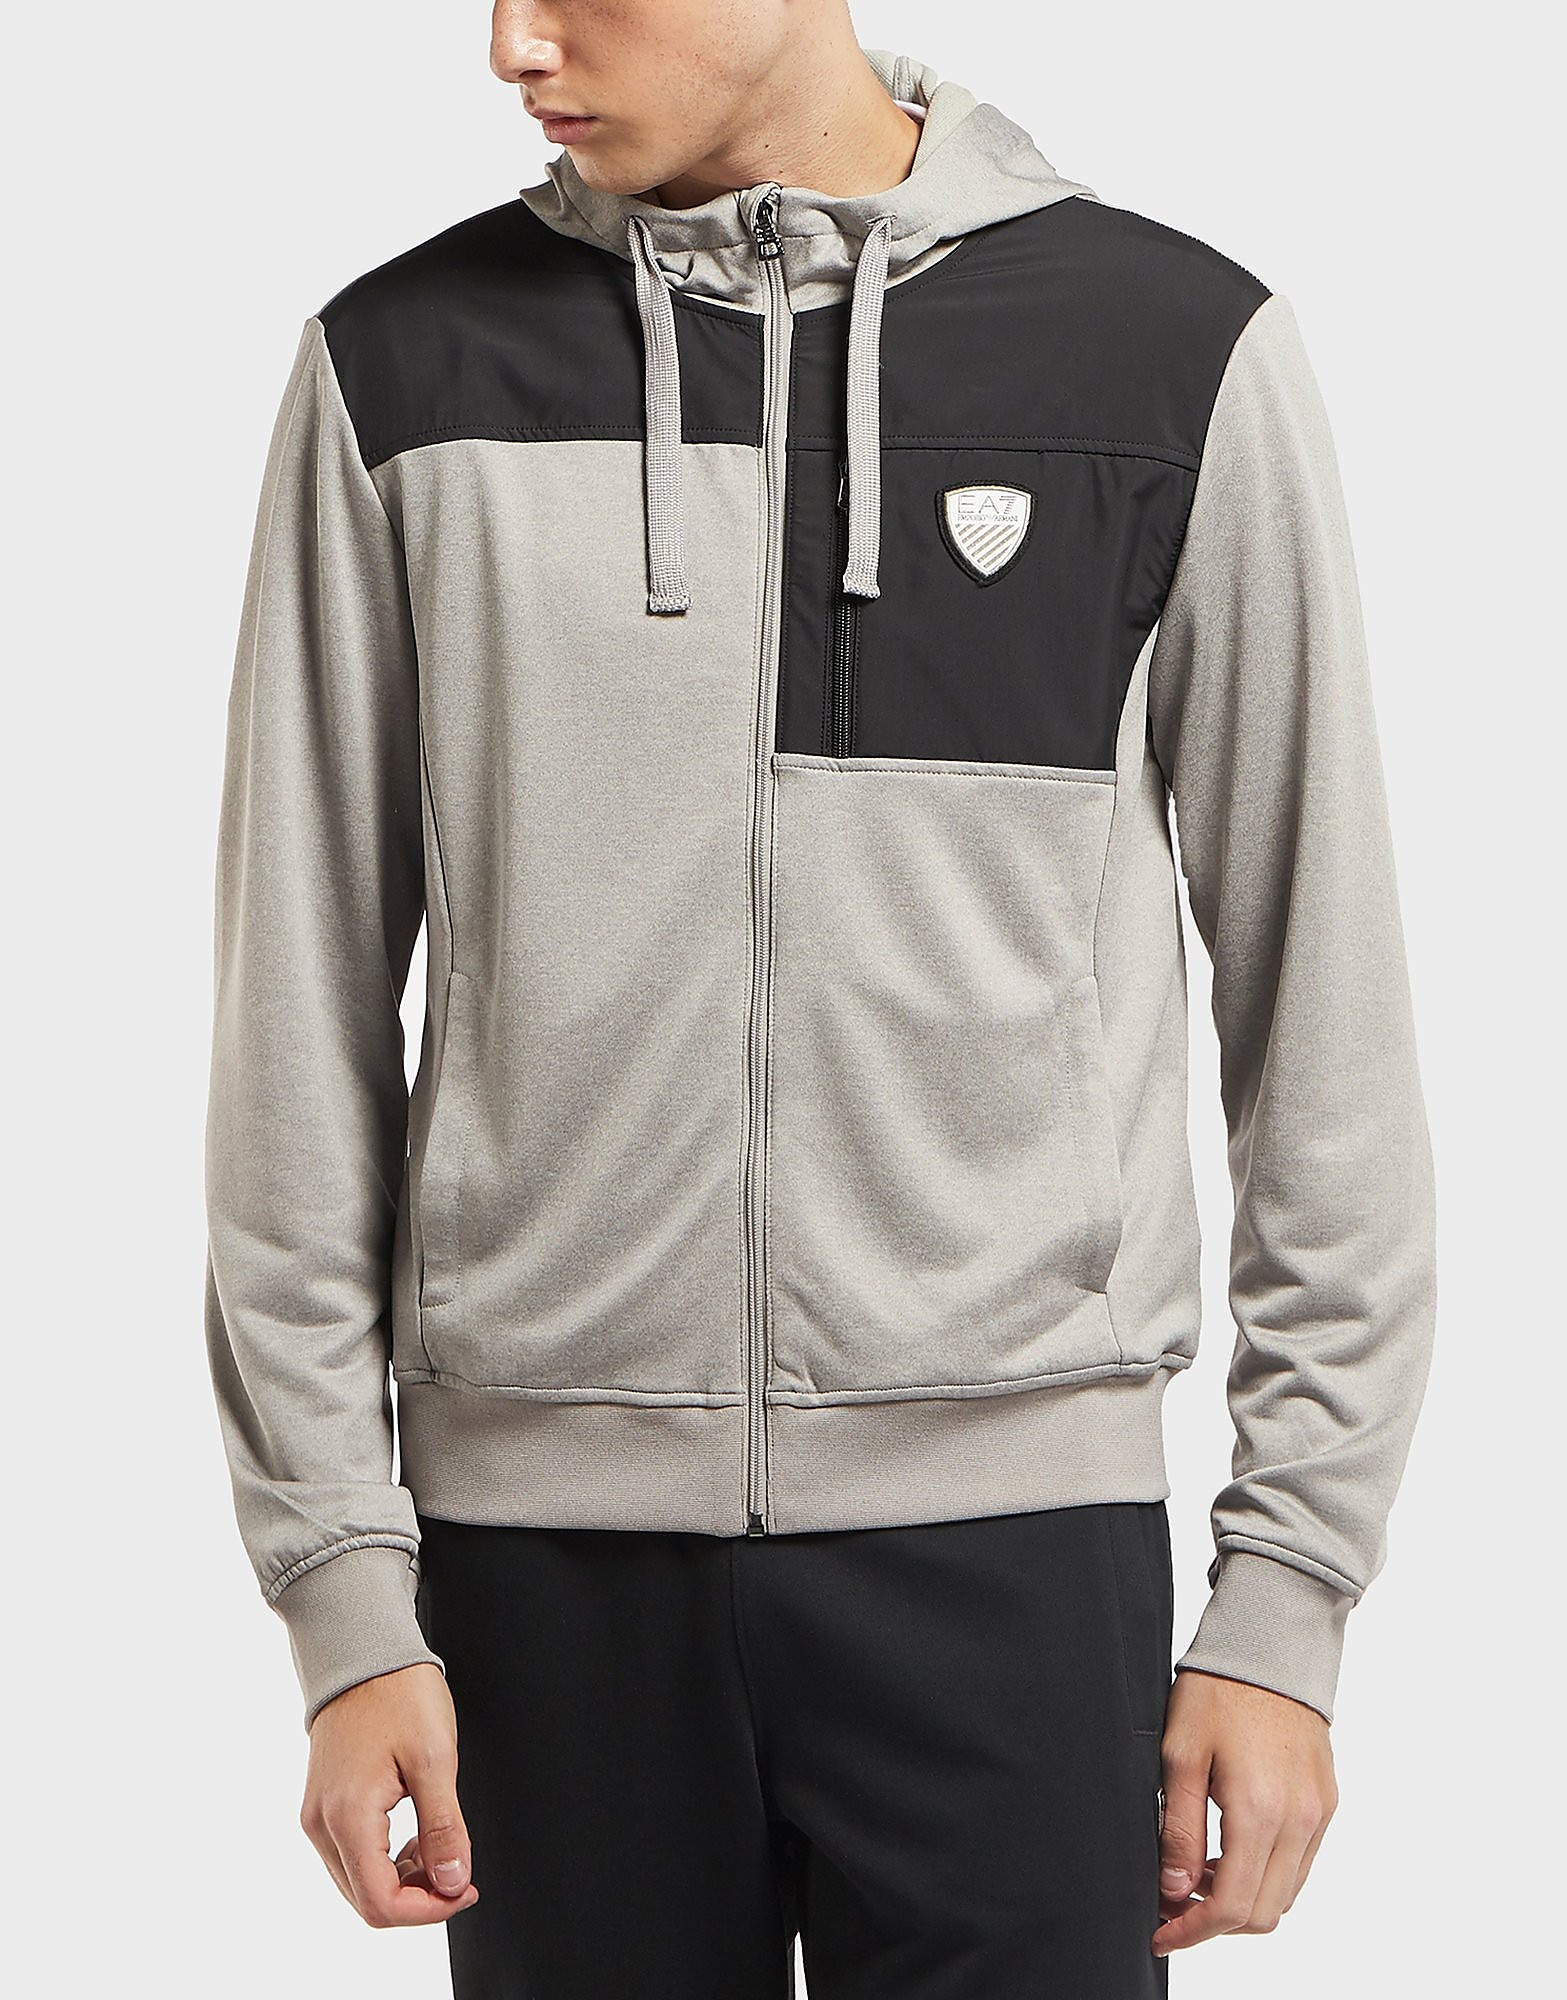 Emporio Armani EA7 Shield Overlay Full Zip Hoodie - Exclusive